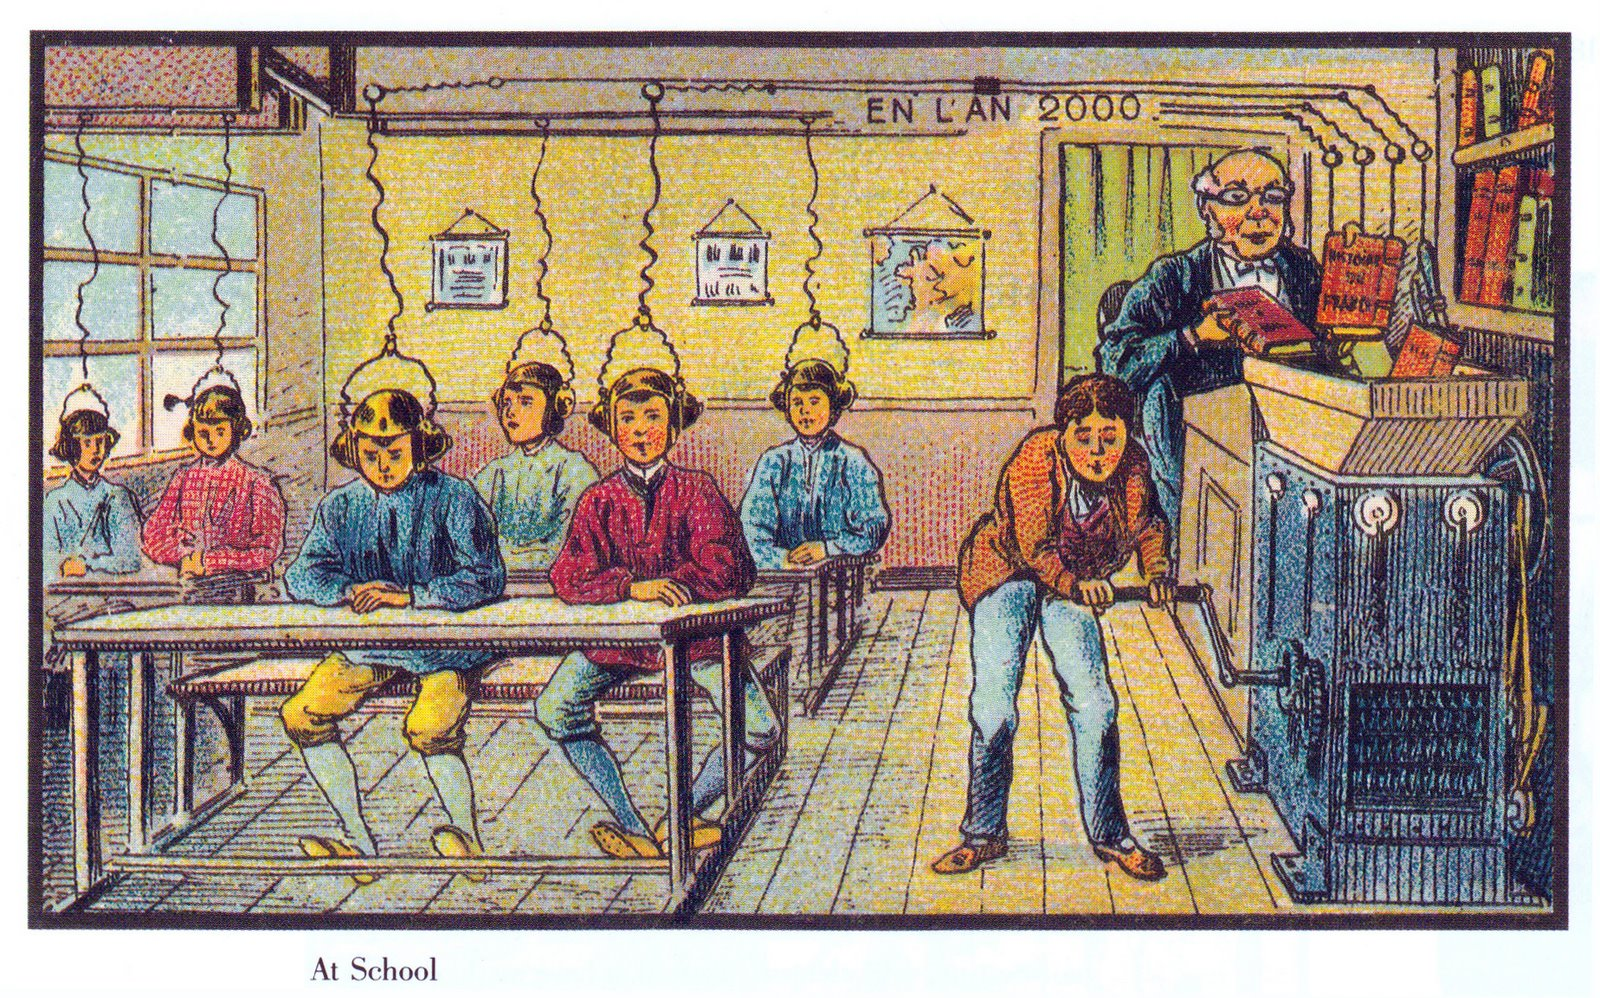 Future school. France, paper card. (In the year 2000...)